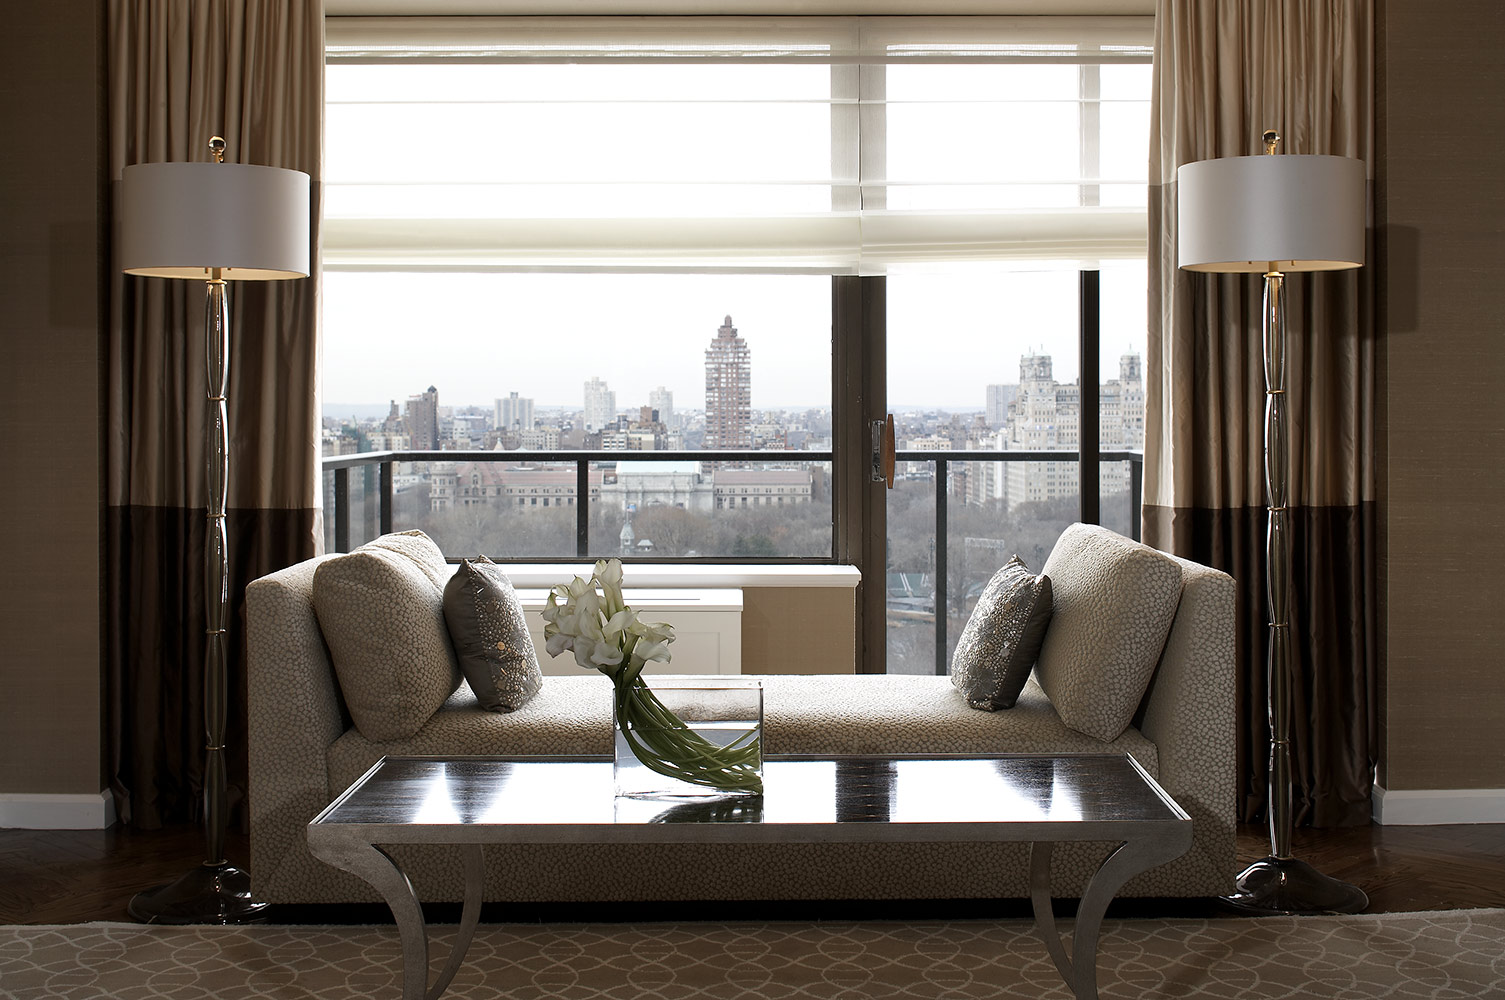 Evelyn Benatar New York Interior Design Living Room Image By Jonathan R